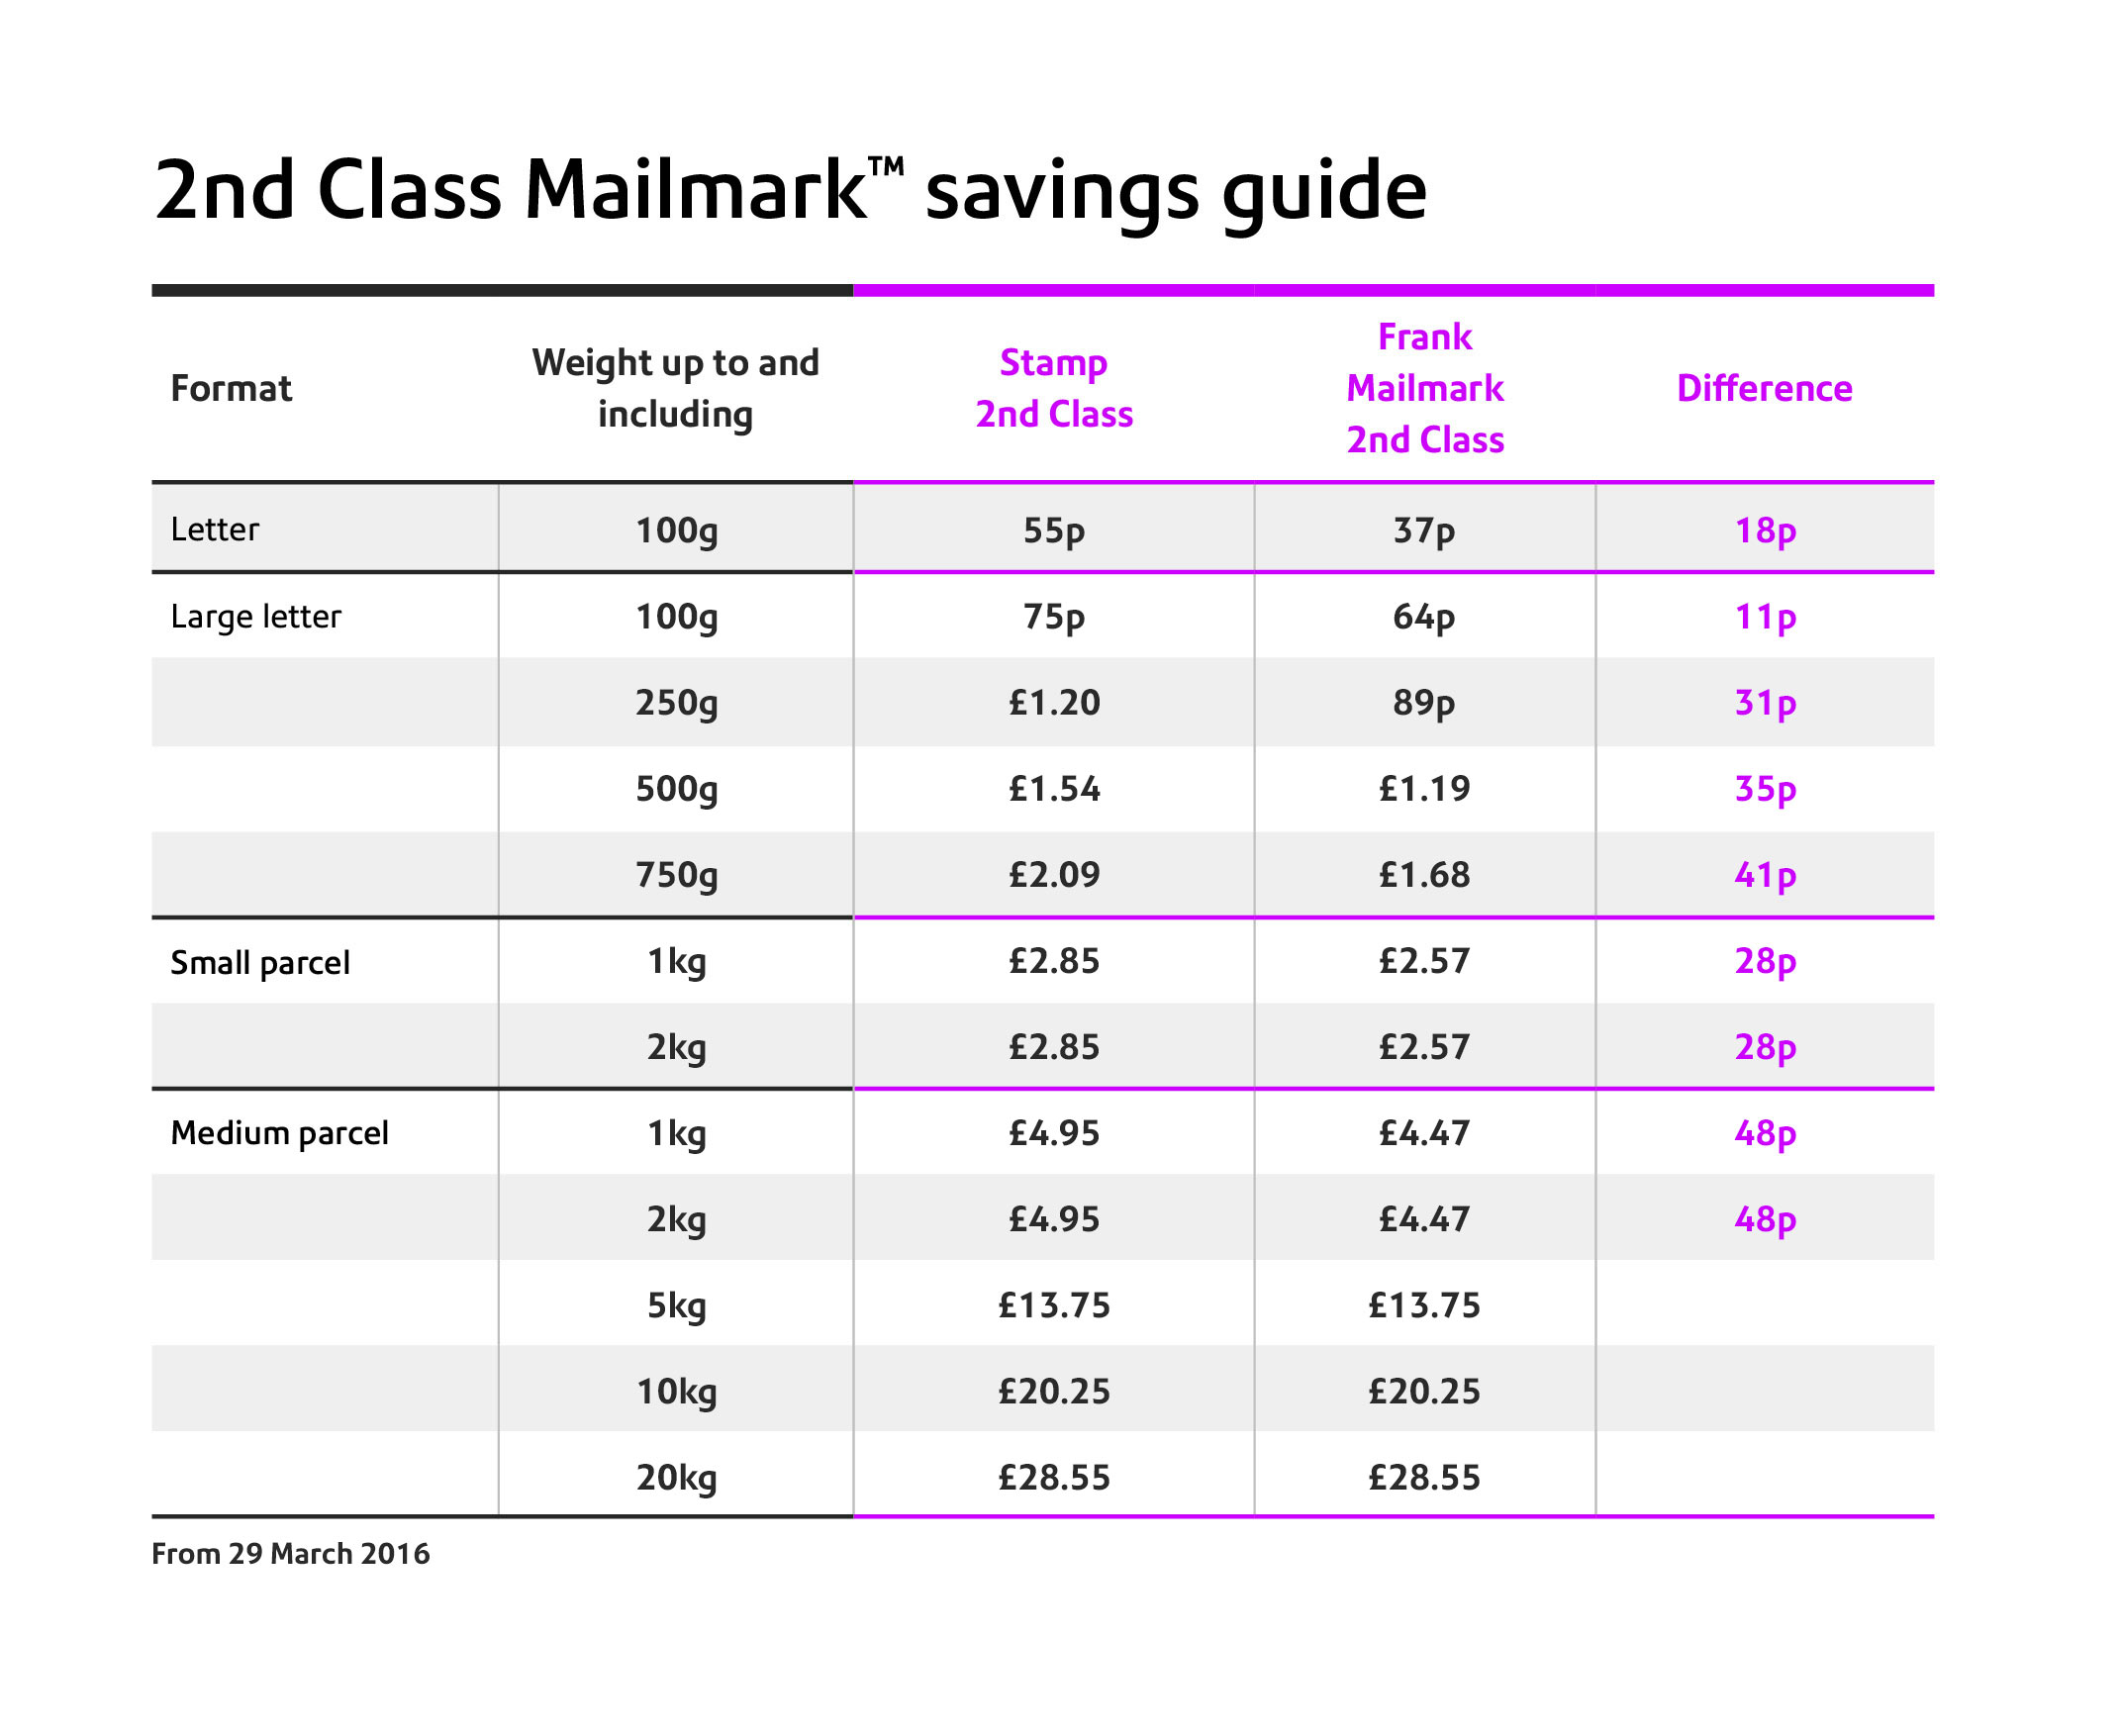 2nd class Mailmark savings guide